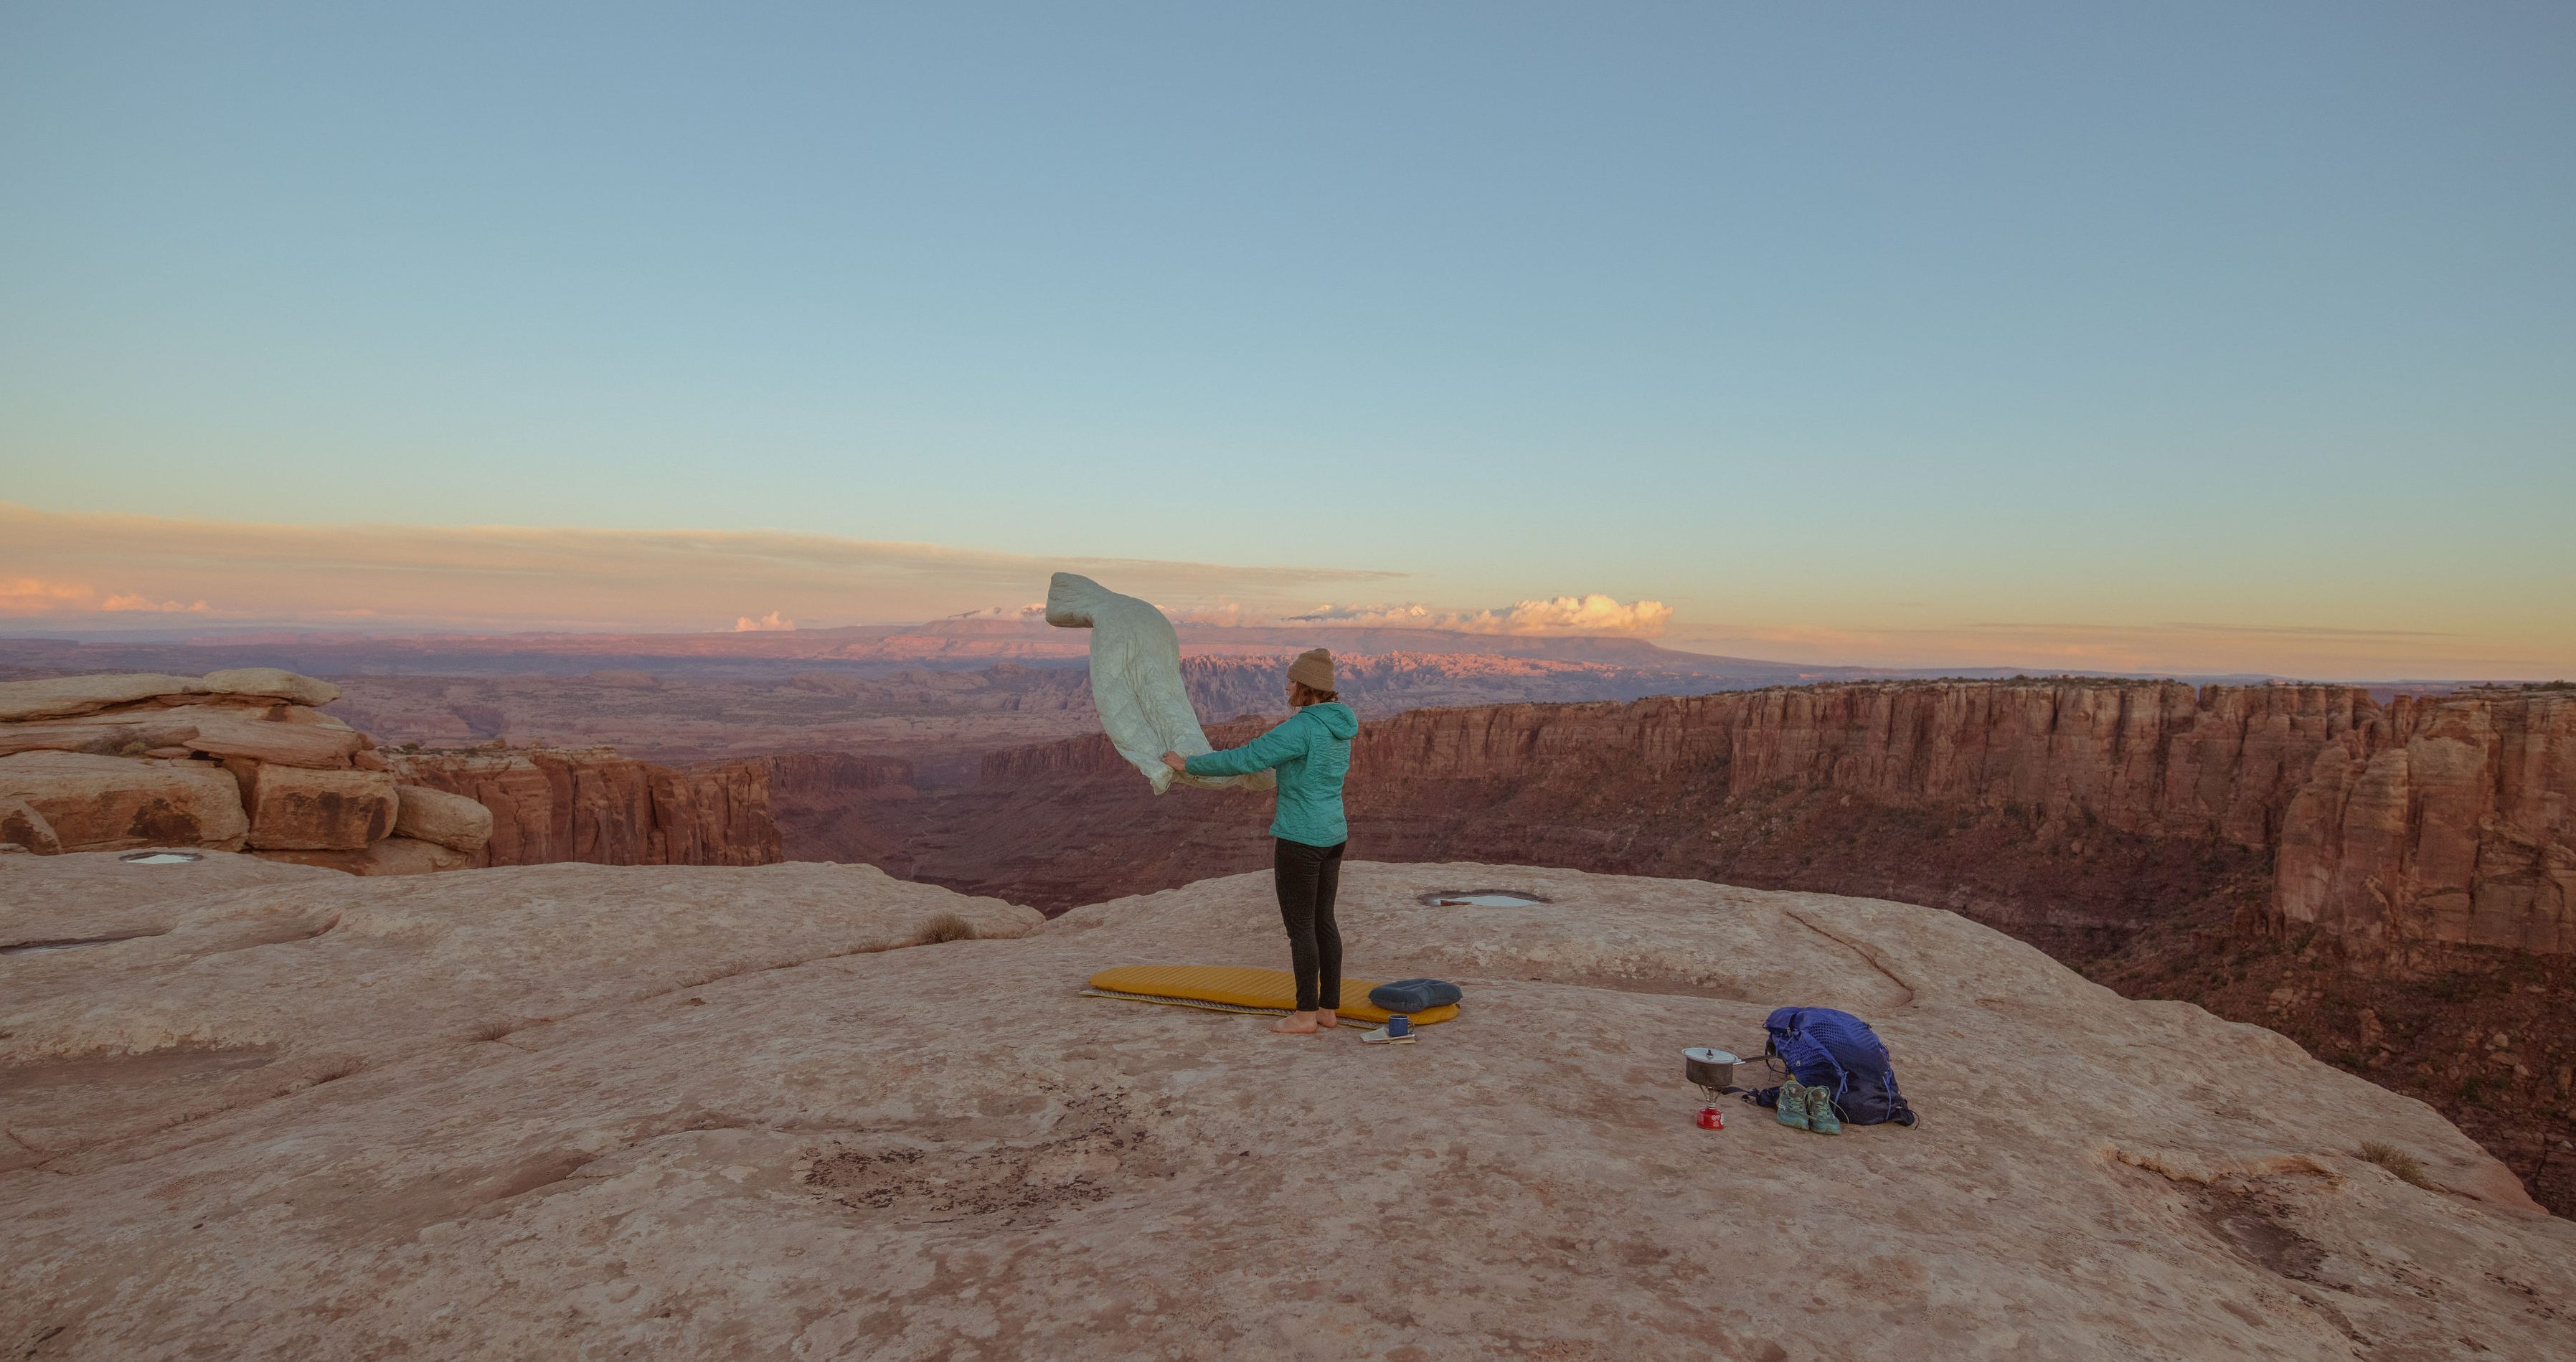 camping in the desert with camping quilt and sleeping pad